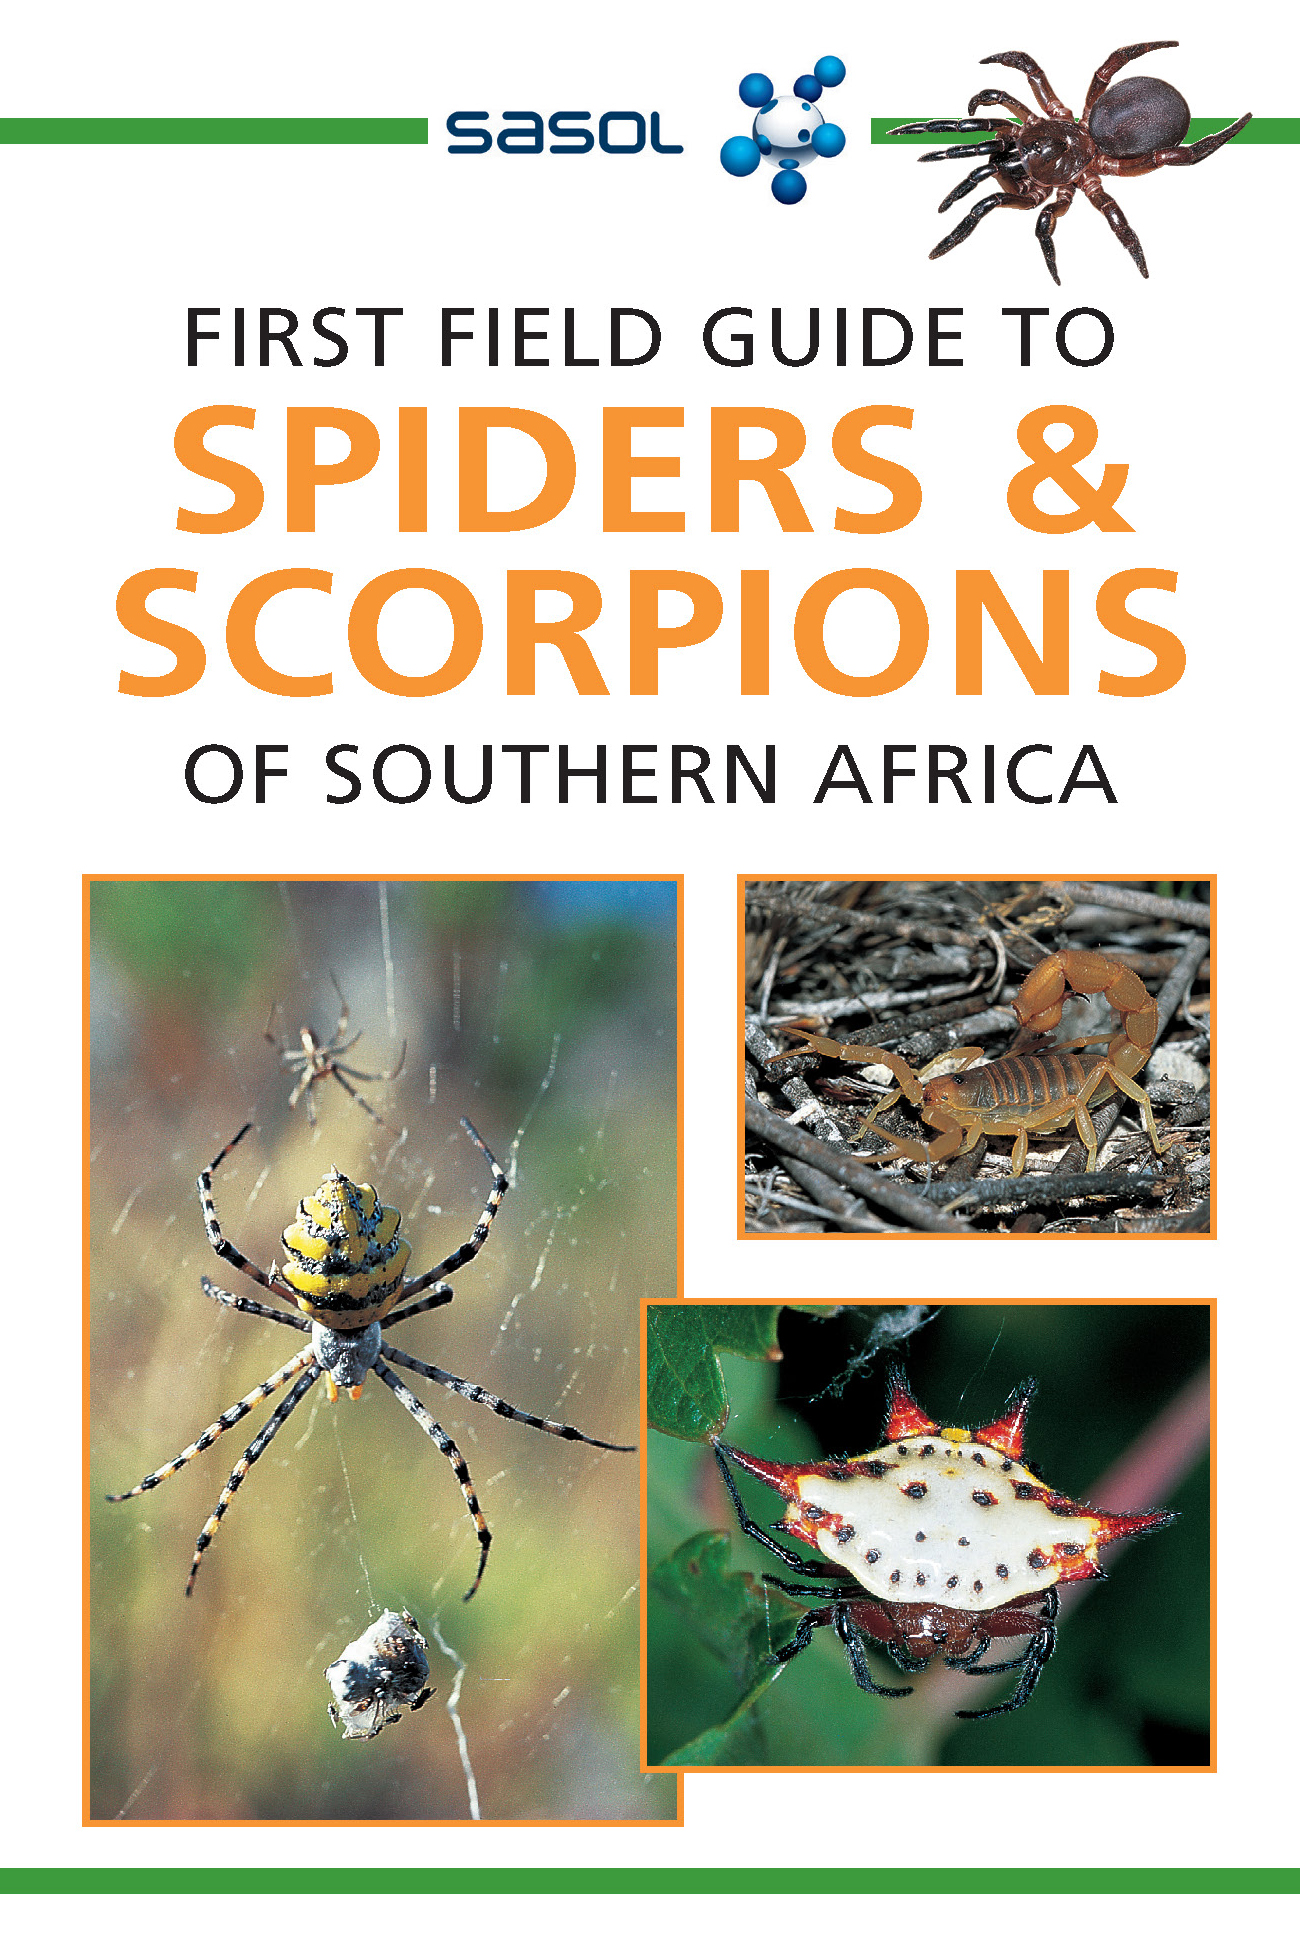 Picture of First field guide to spiders & scorpions of Southern Africa